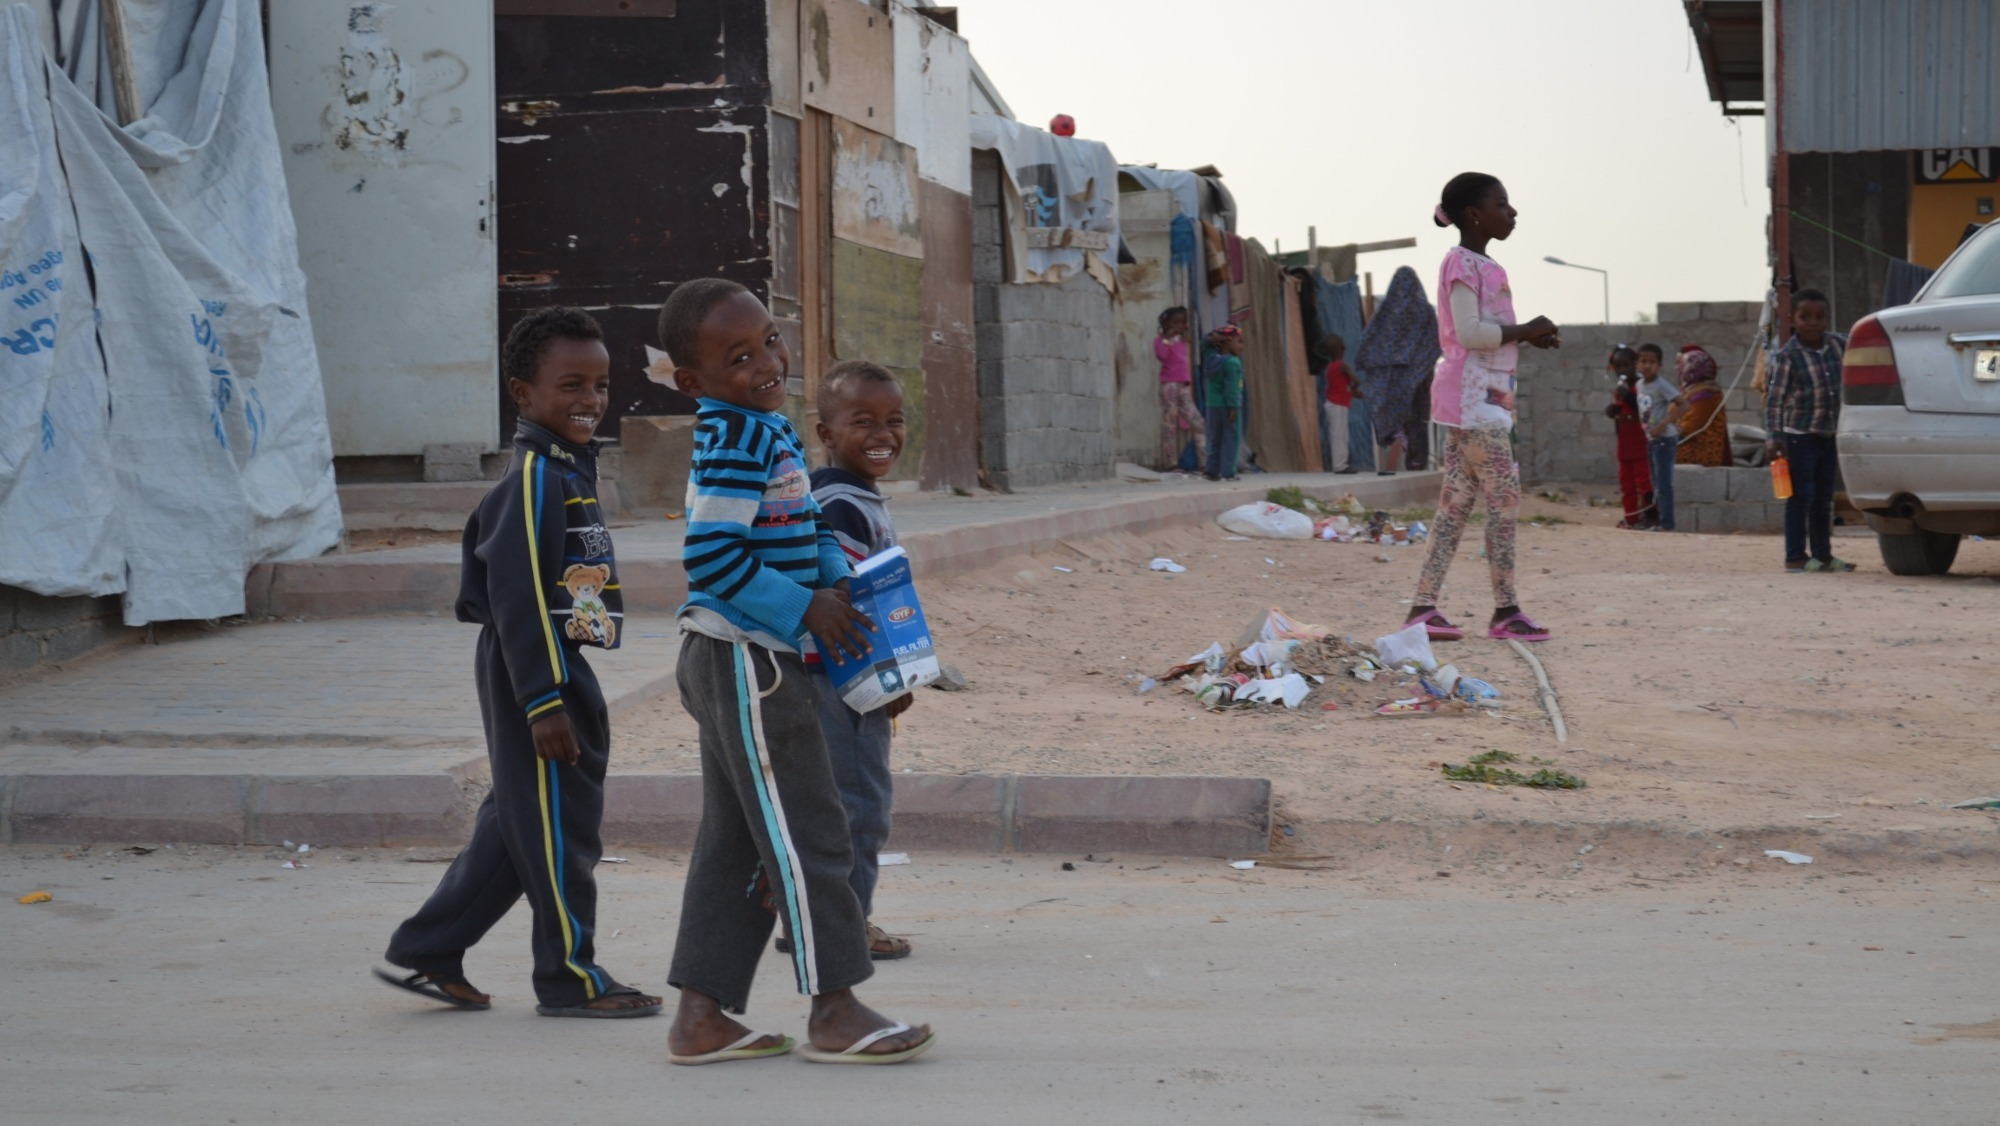 A Tawergha IDP camp on Airport Road in Tripoli, Libya.